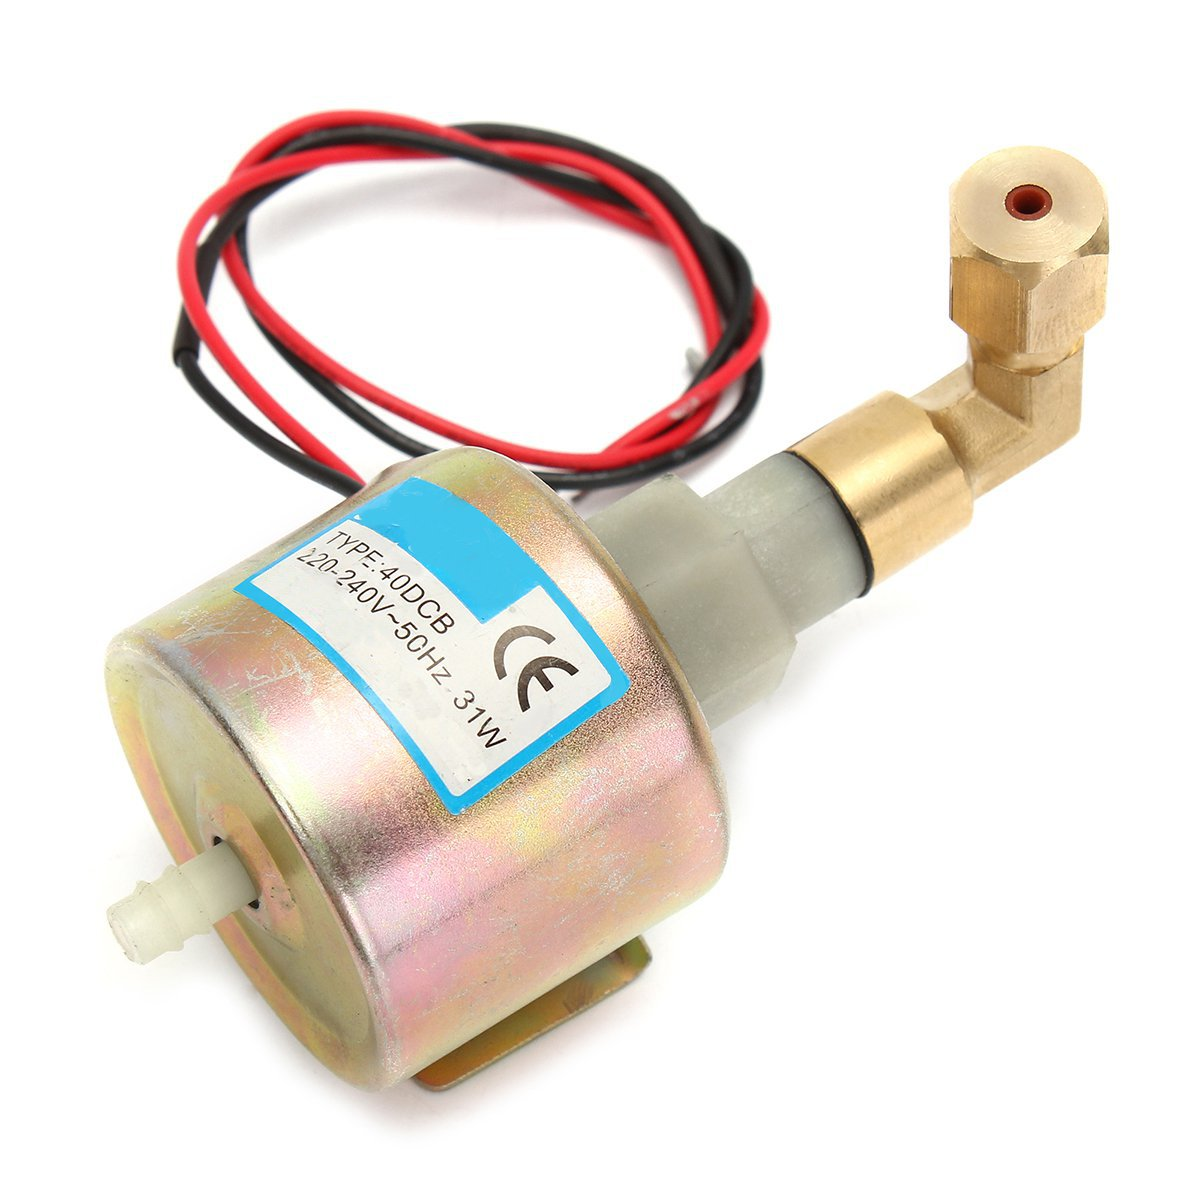 31W Fog Smoke Oil Pump 220-240V for Stage 1500W Smoke Machine Accessories